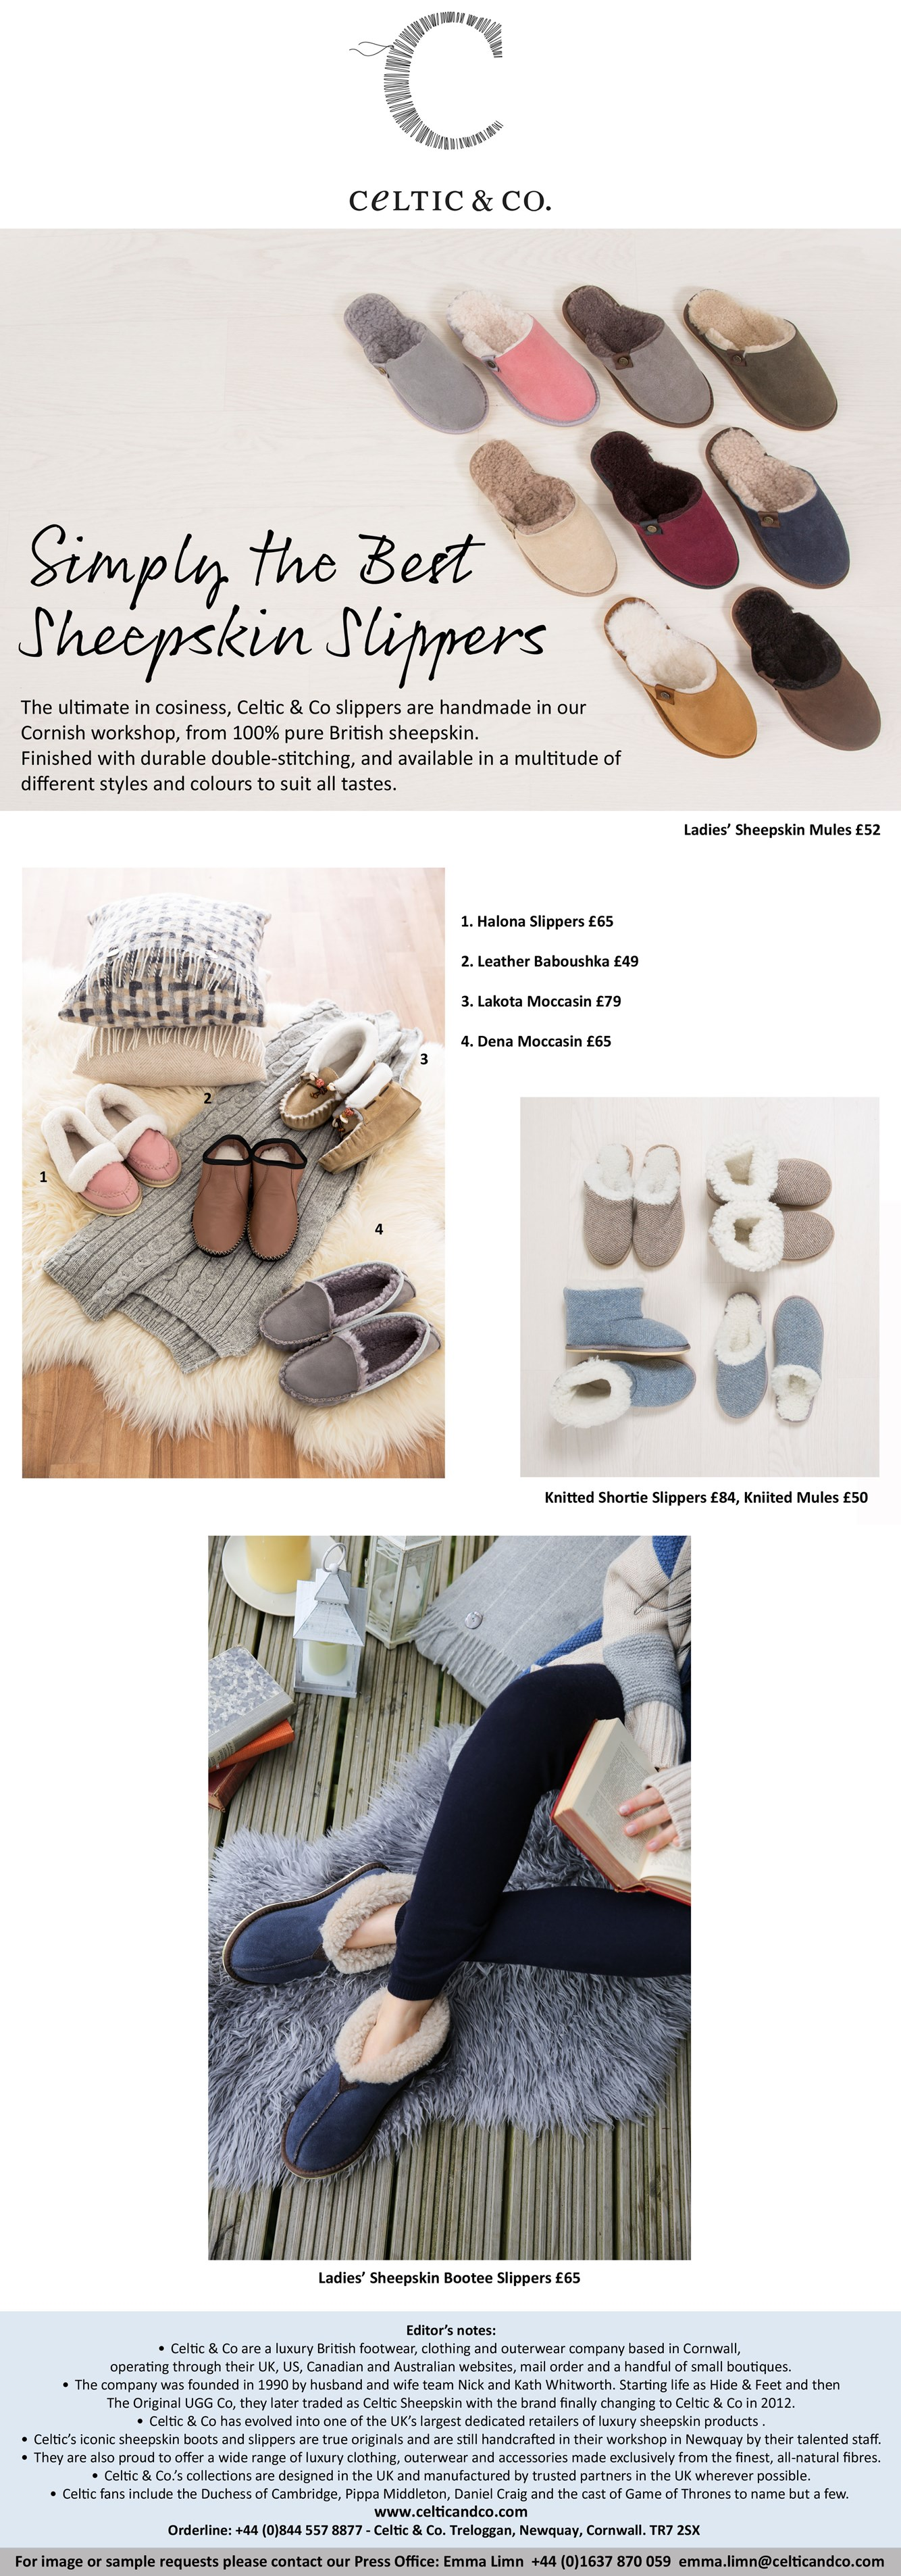 sheepskin slippers - celtic and co.jpg